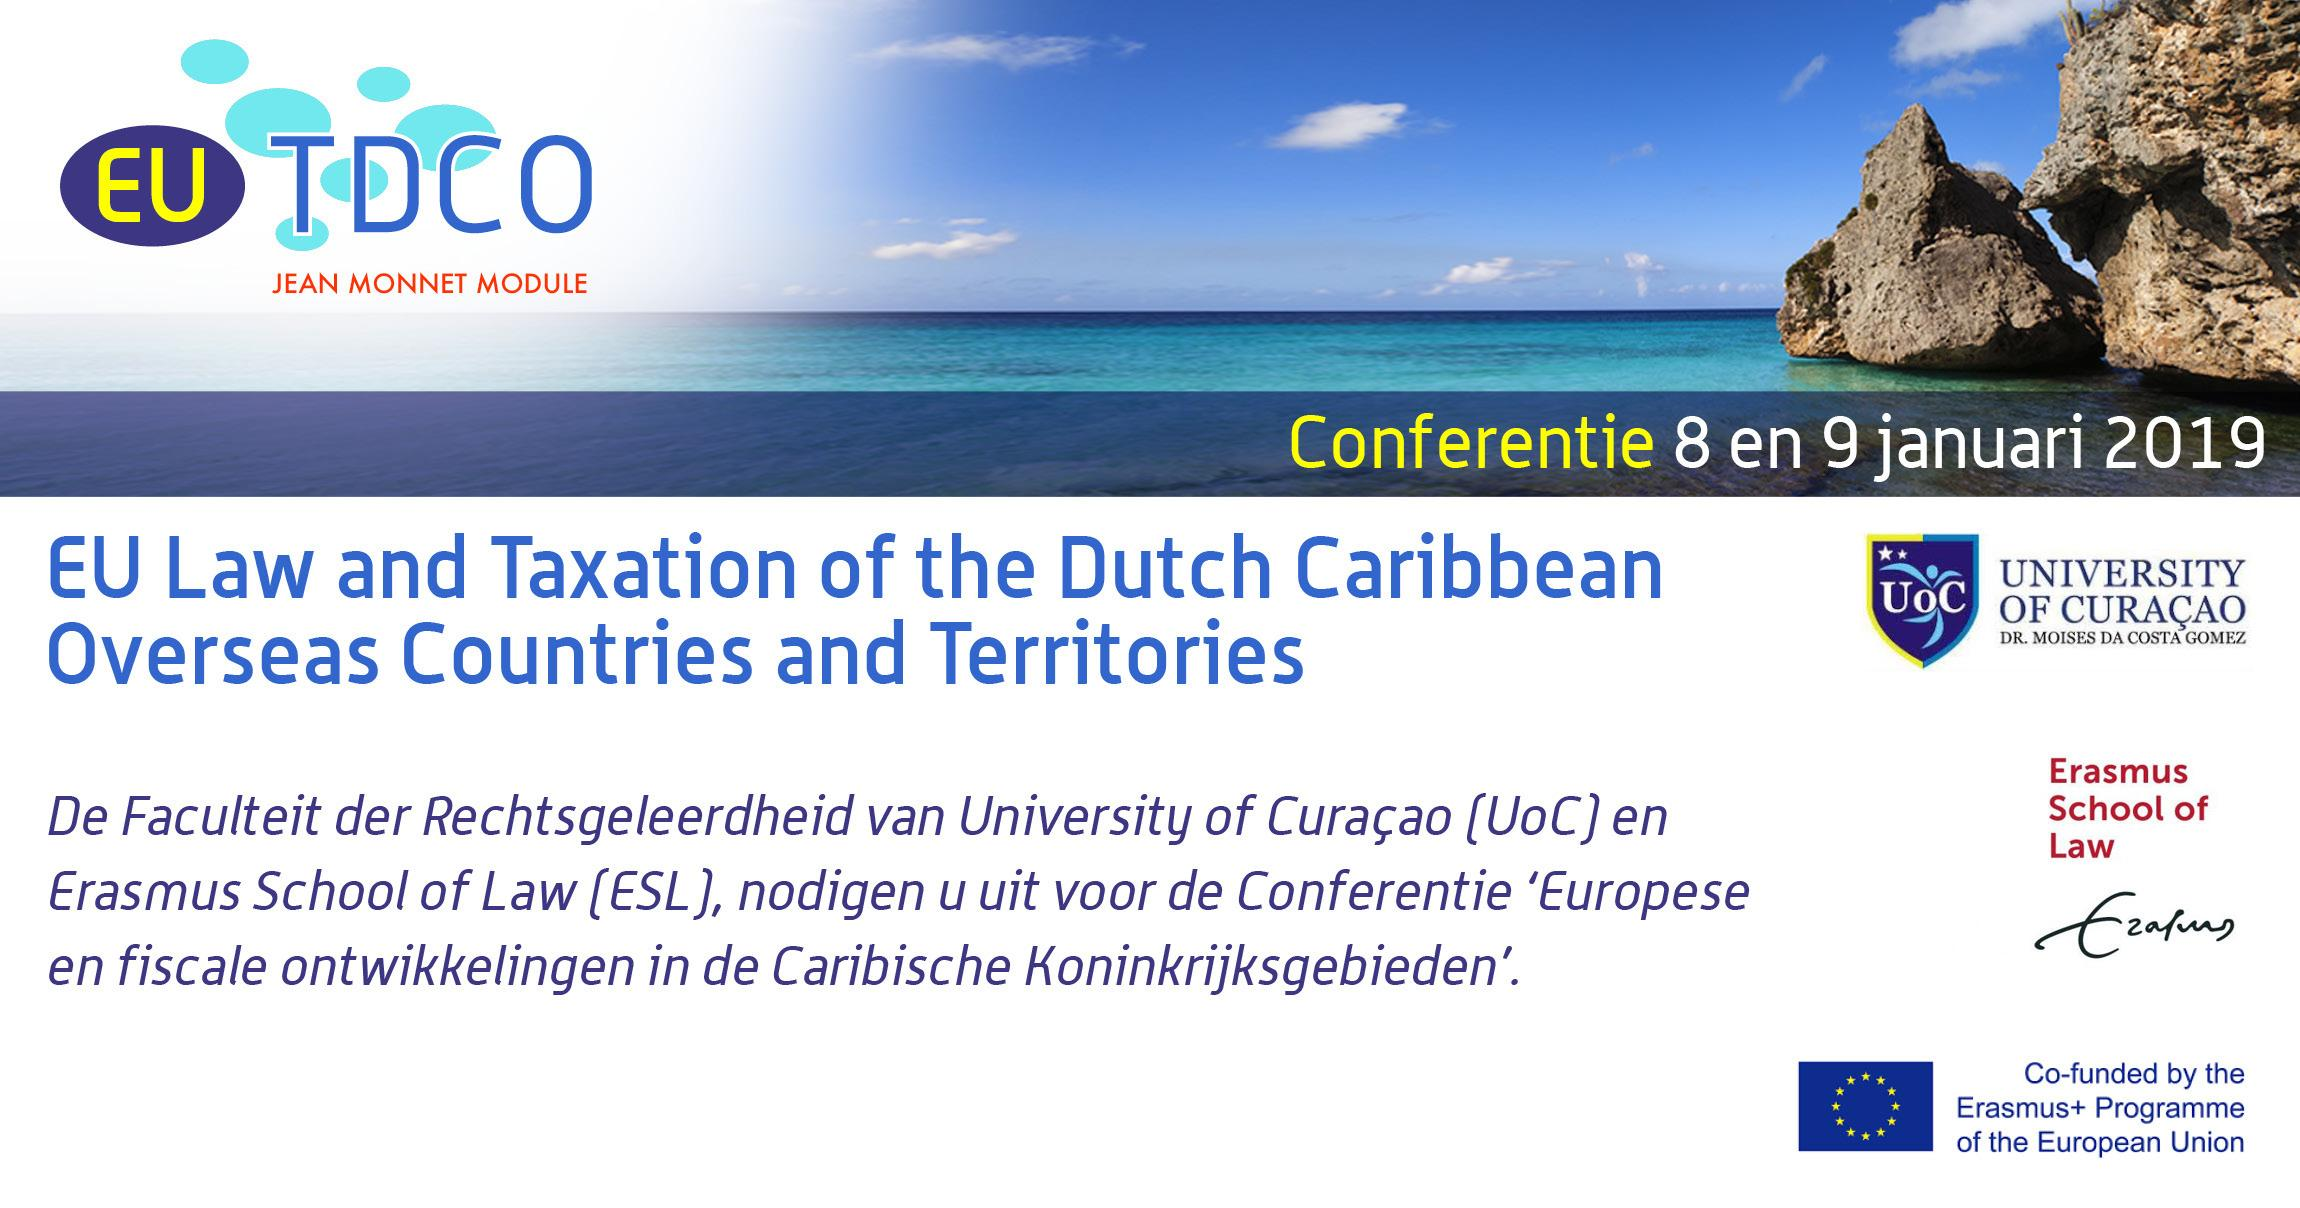 EU Law and Taxation of the Dutch Caribbean Overseas Countries and Territories @ University of Curacao